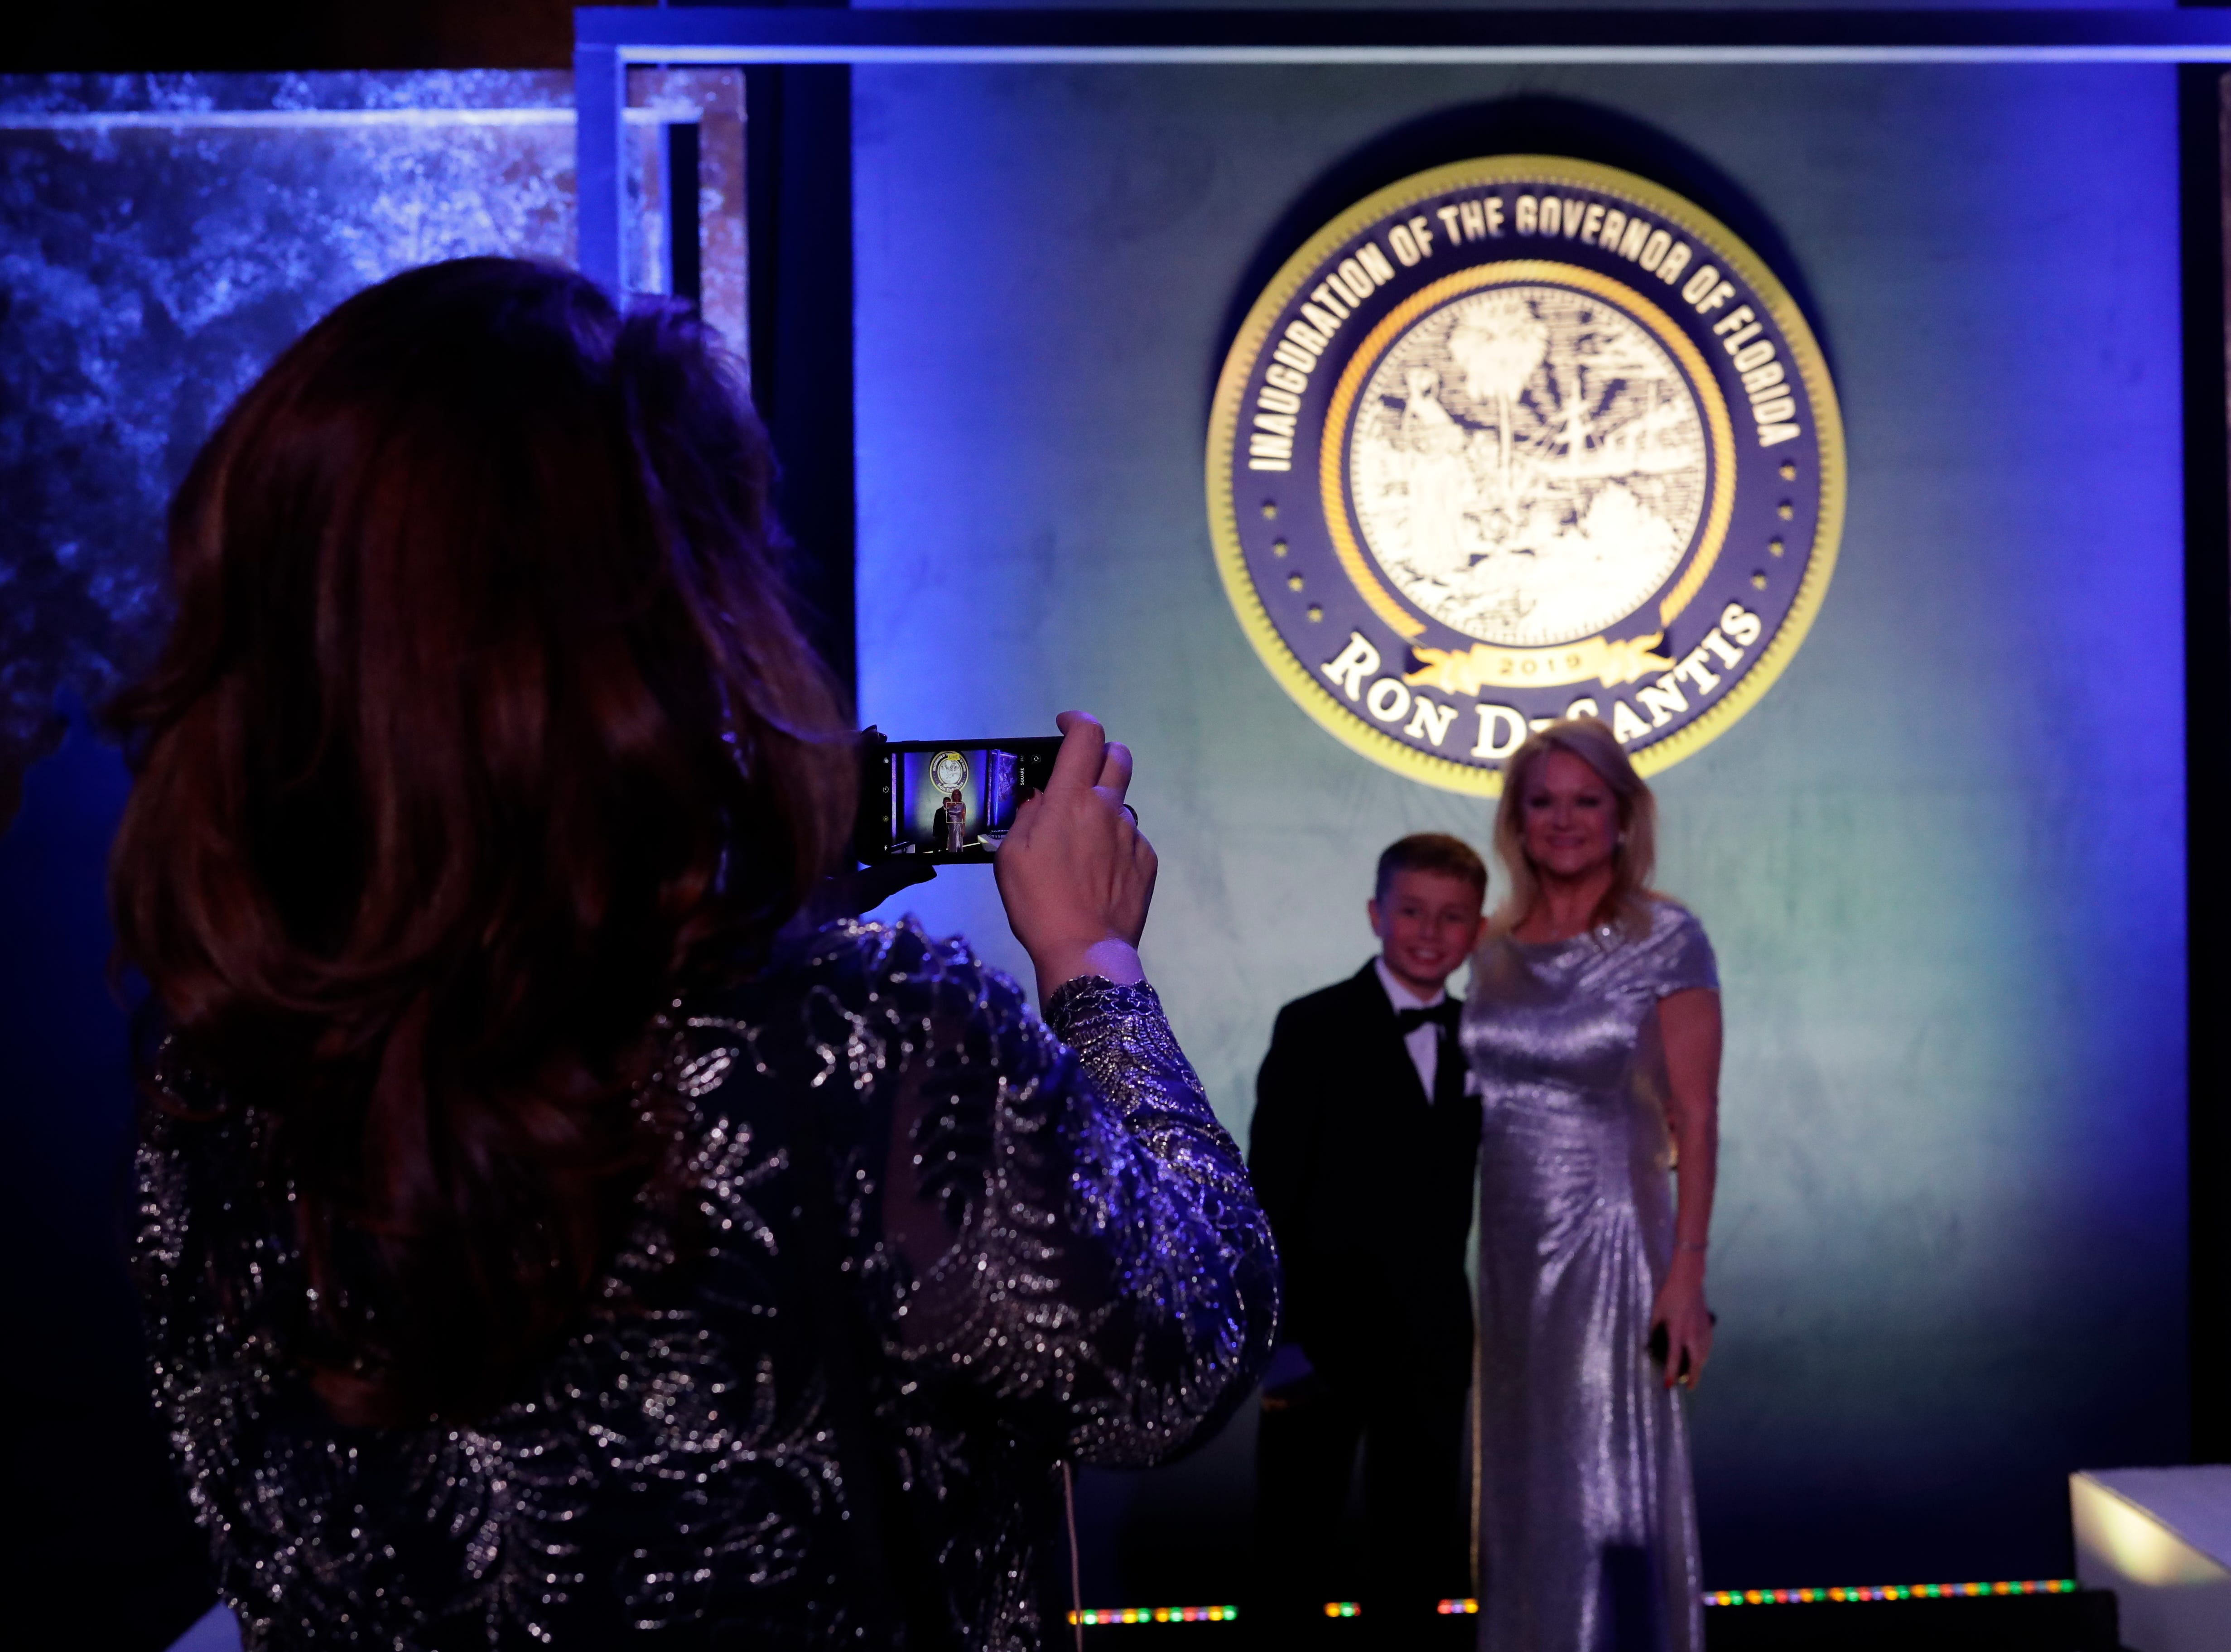 Hundreds of guests from all over Florida attend Florida's 46th Governor's Inaugural Ball at the Tucker Civic Center, Tuesday, Jan. 8, 2019. Guests pose for a photo in front of the DeSantis inauguration Florida state seal.